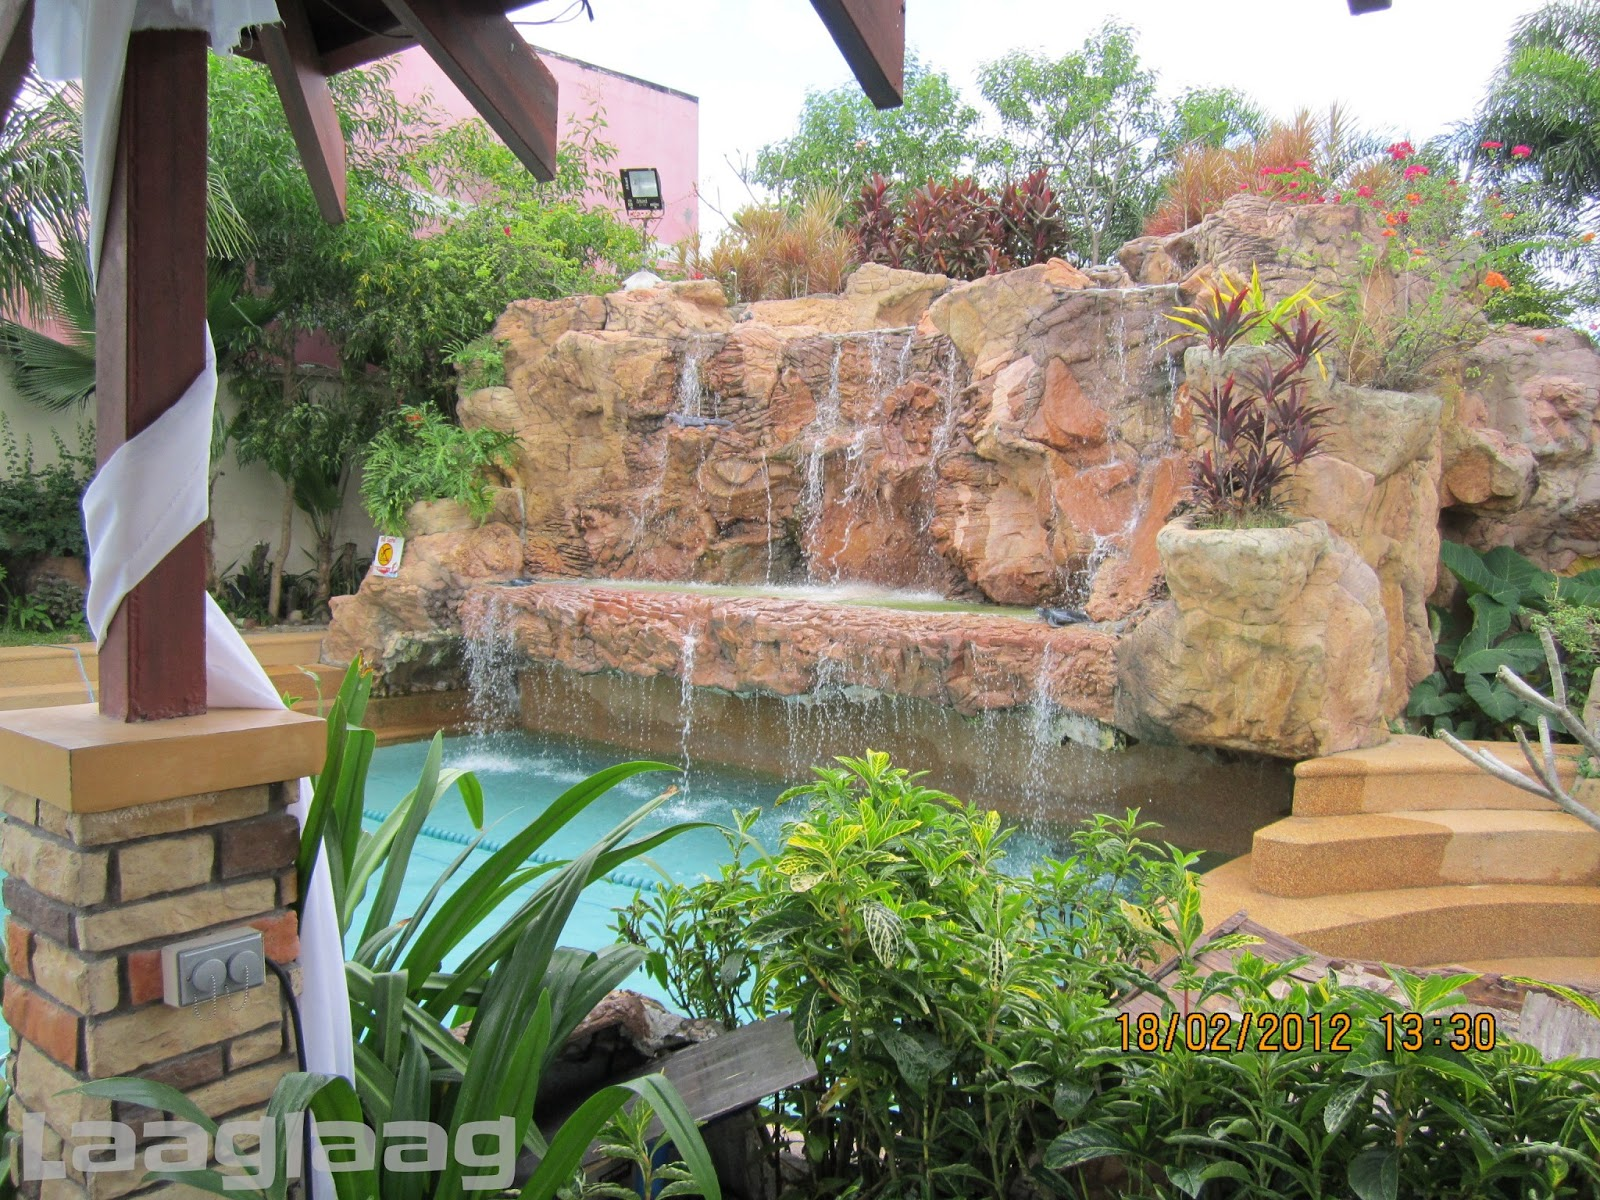 st agatha resort St agatha resort (lodging or accommodation) is located at st agatha homes, sta rita, guiguinto, bulacan, bulacan, philippines.